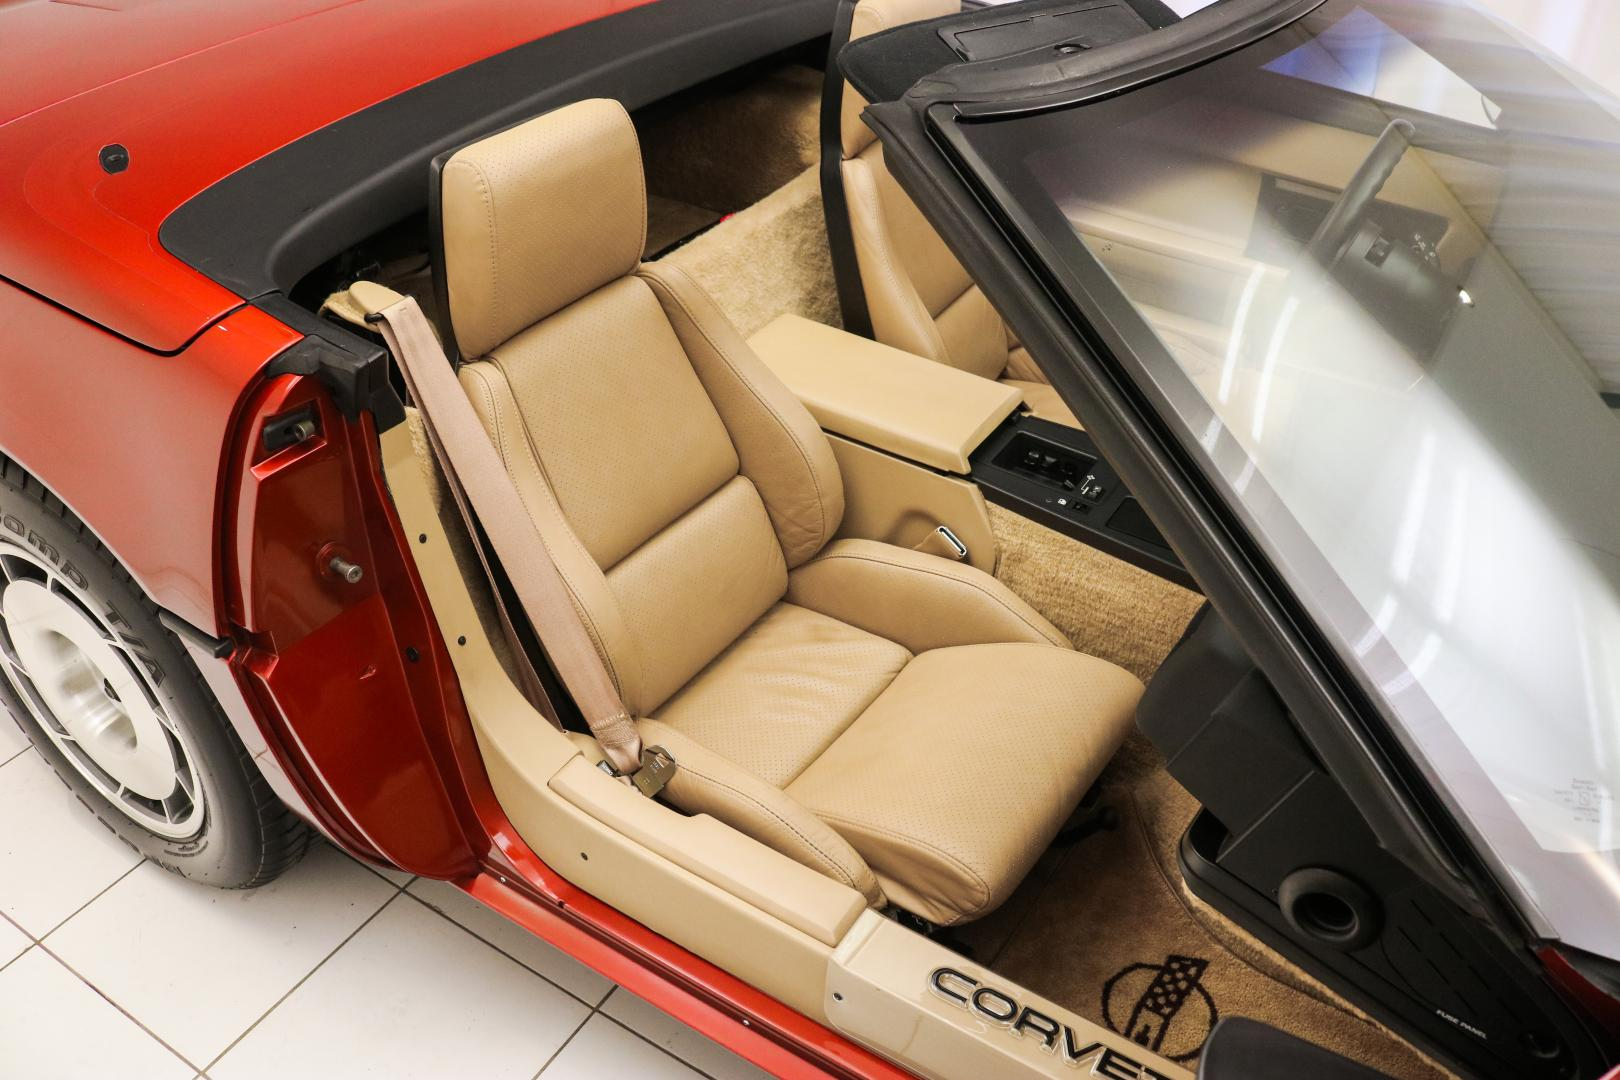 Chevrolet Corvette Pace Car Edition interieur